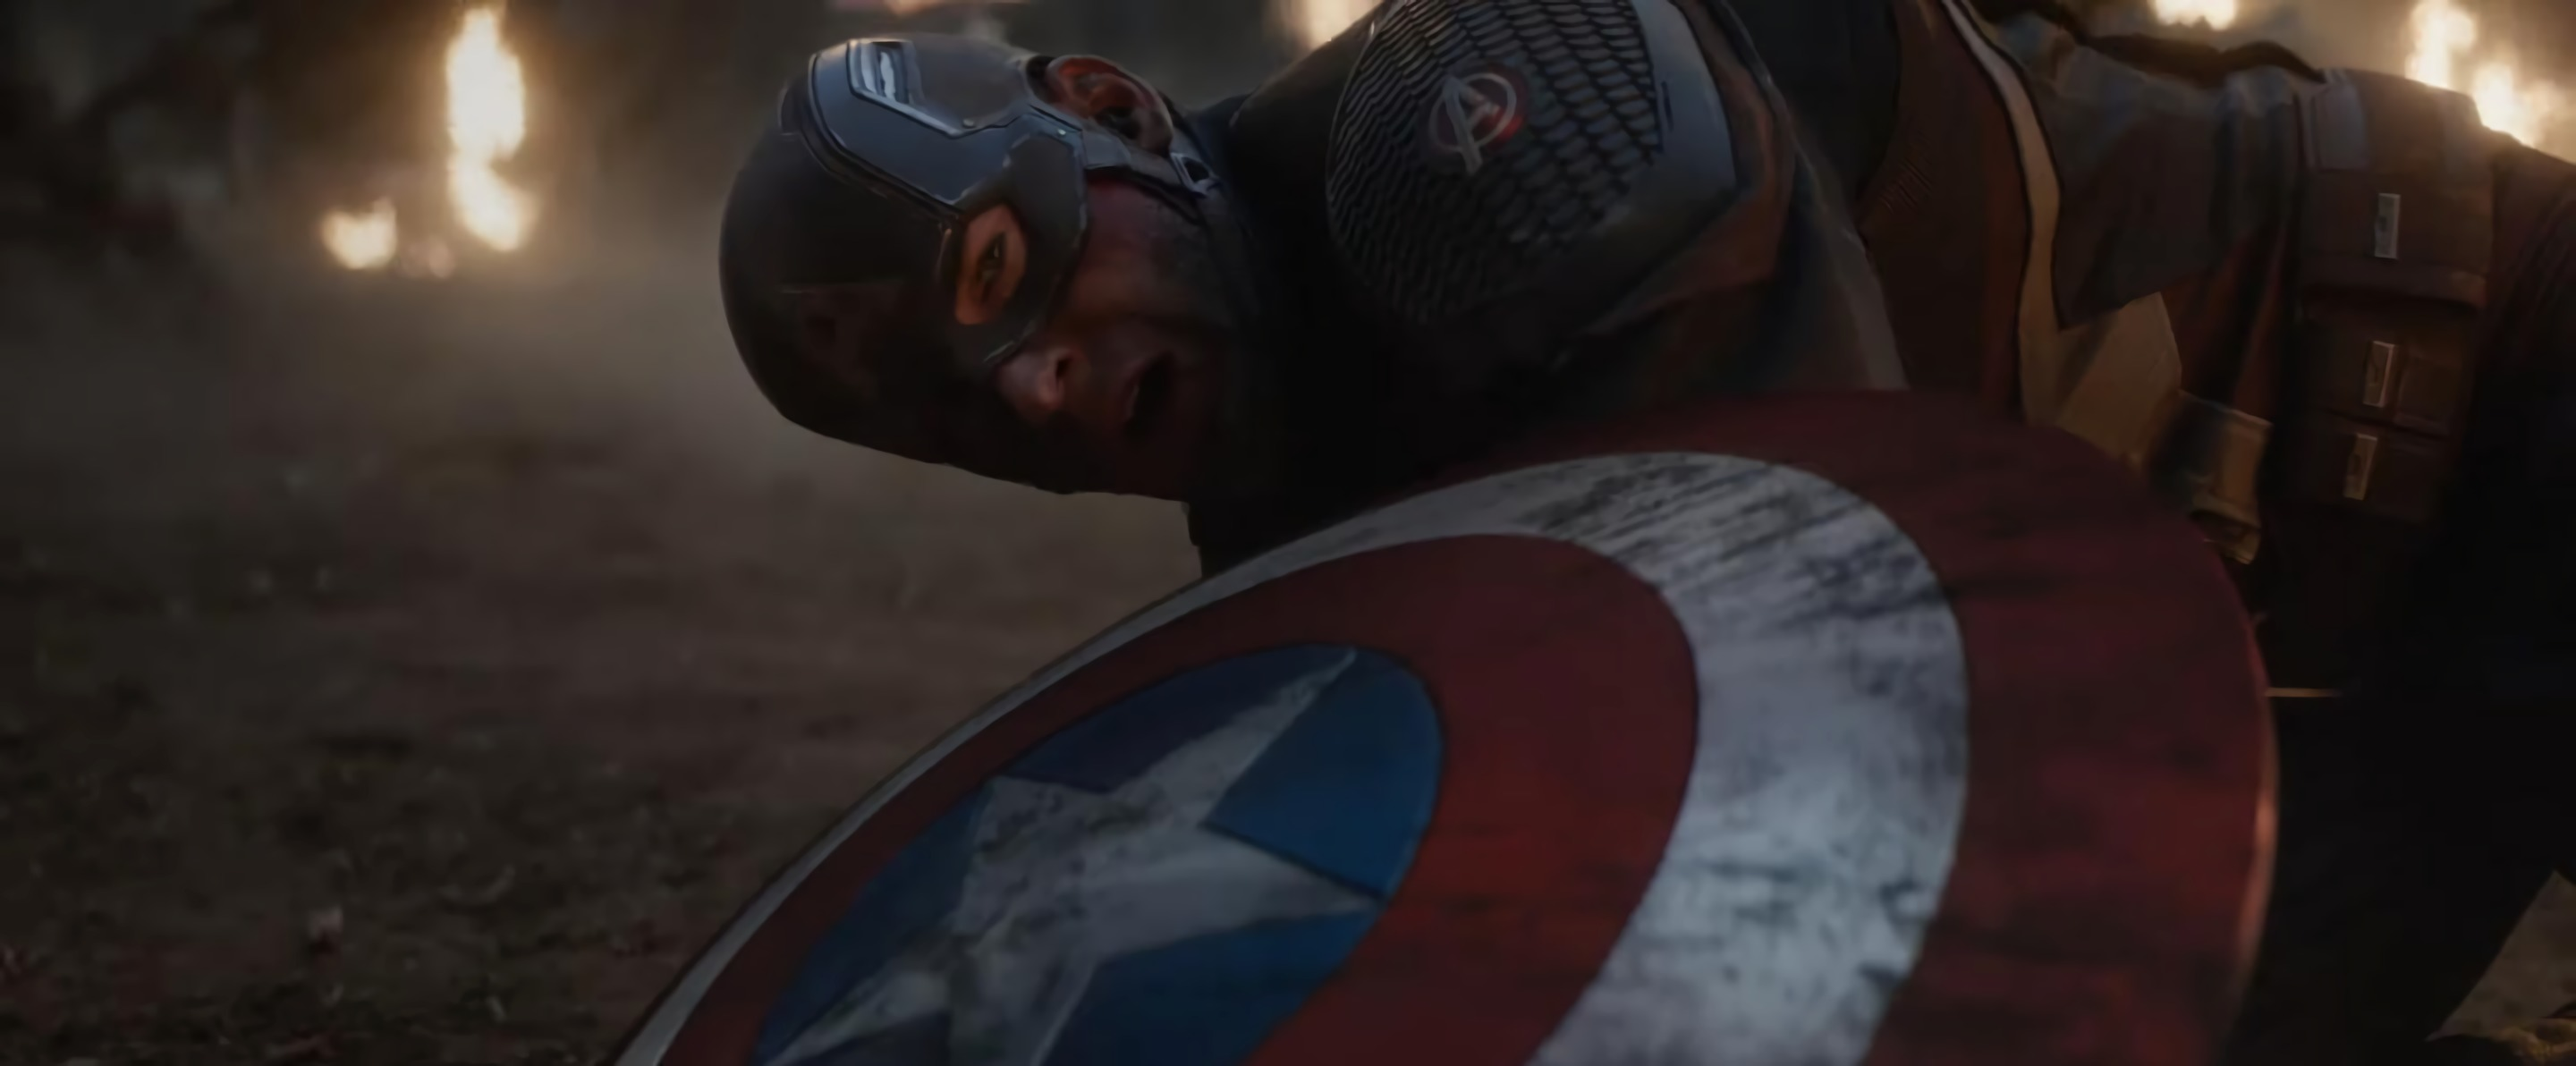 A recent interview reveals the Russo Brothers shot at least five different endings for Avengers: Endgame to avoid possible spoilers.